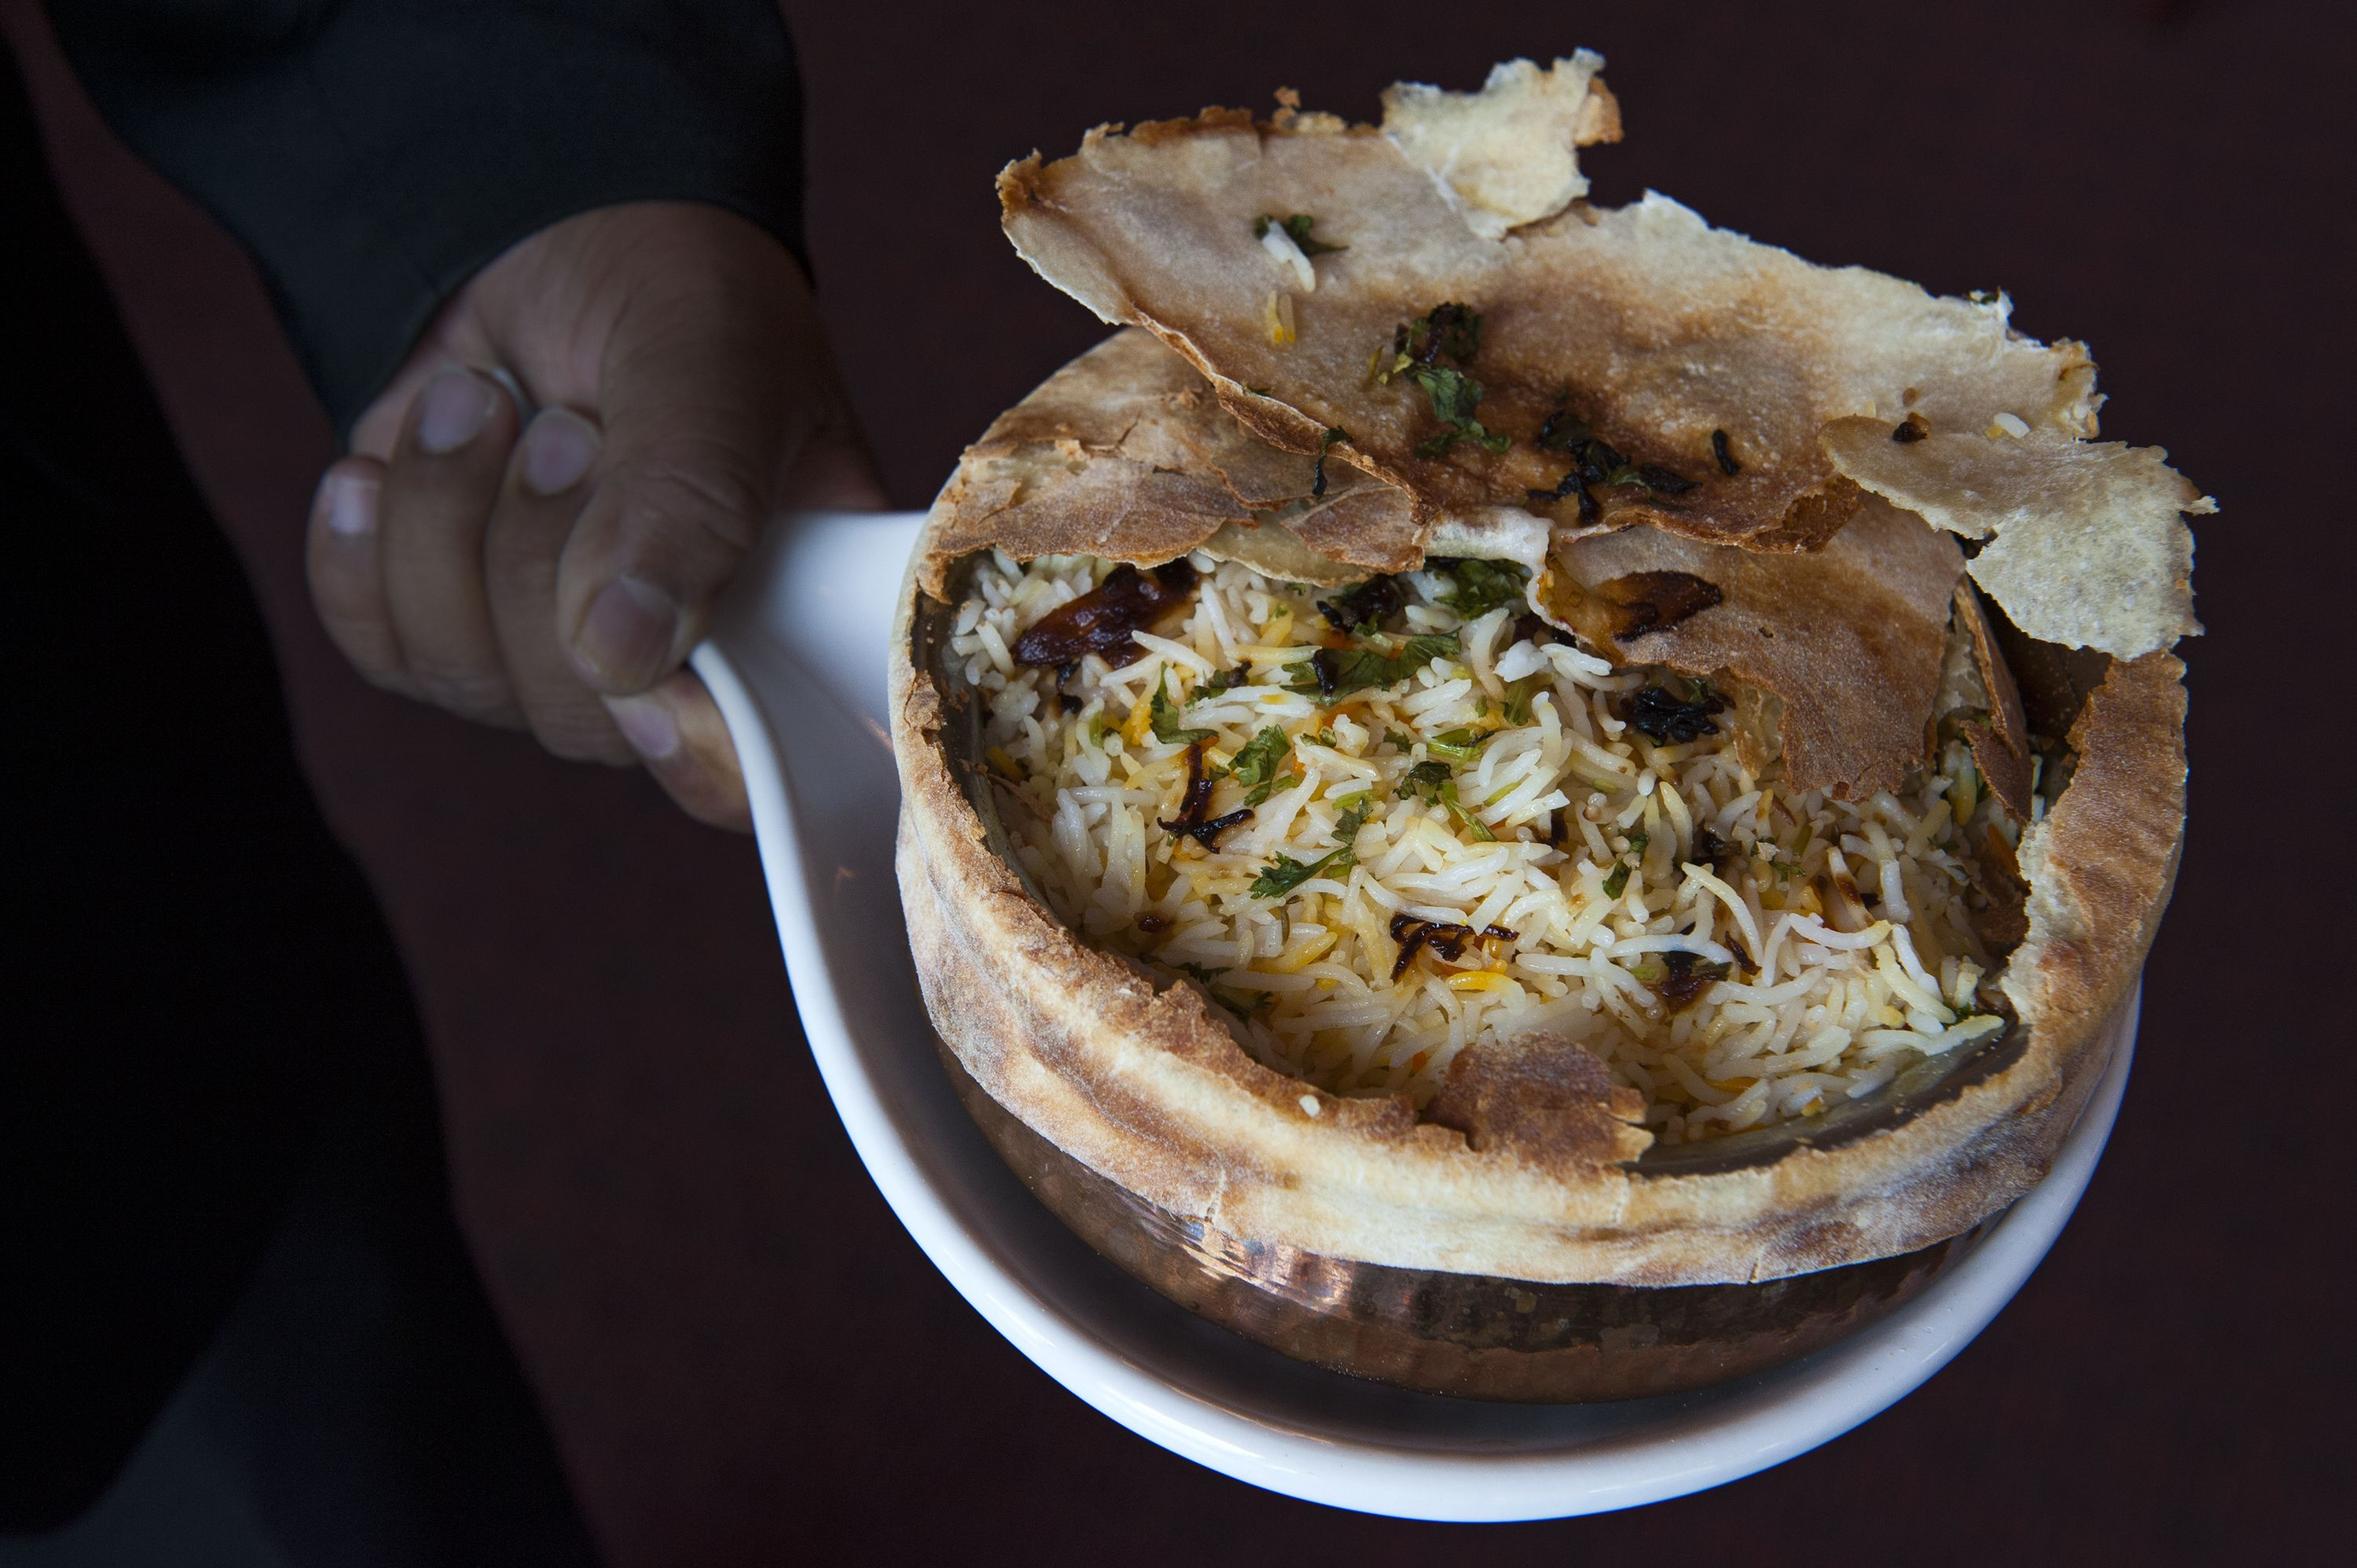 London Curry House - on the list of places to go next in northern Virginia.